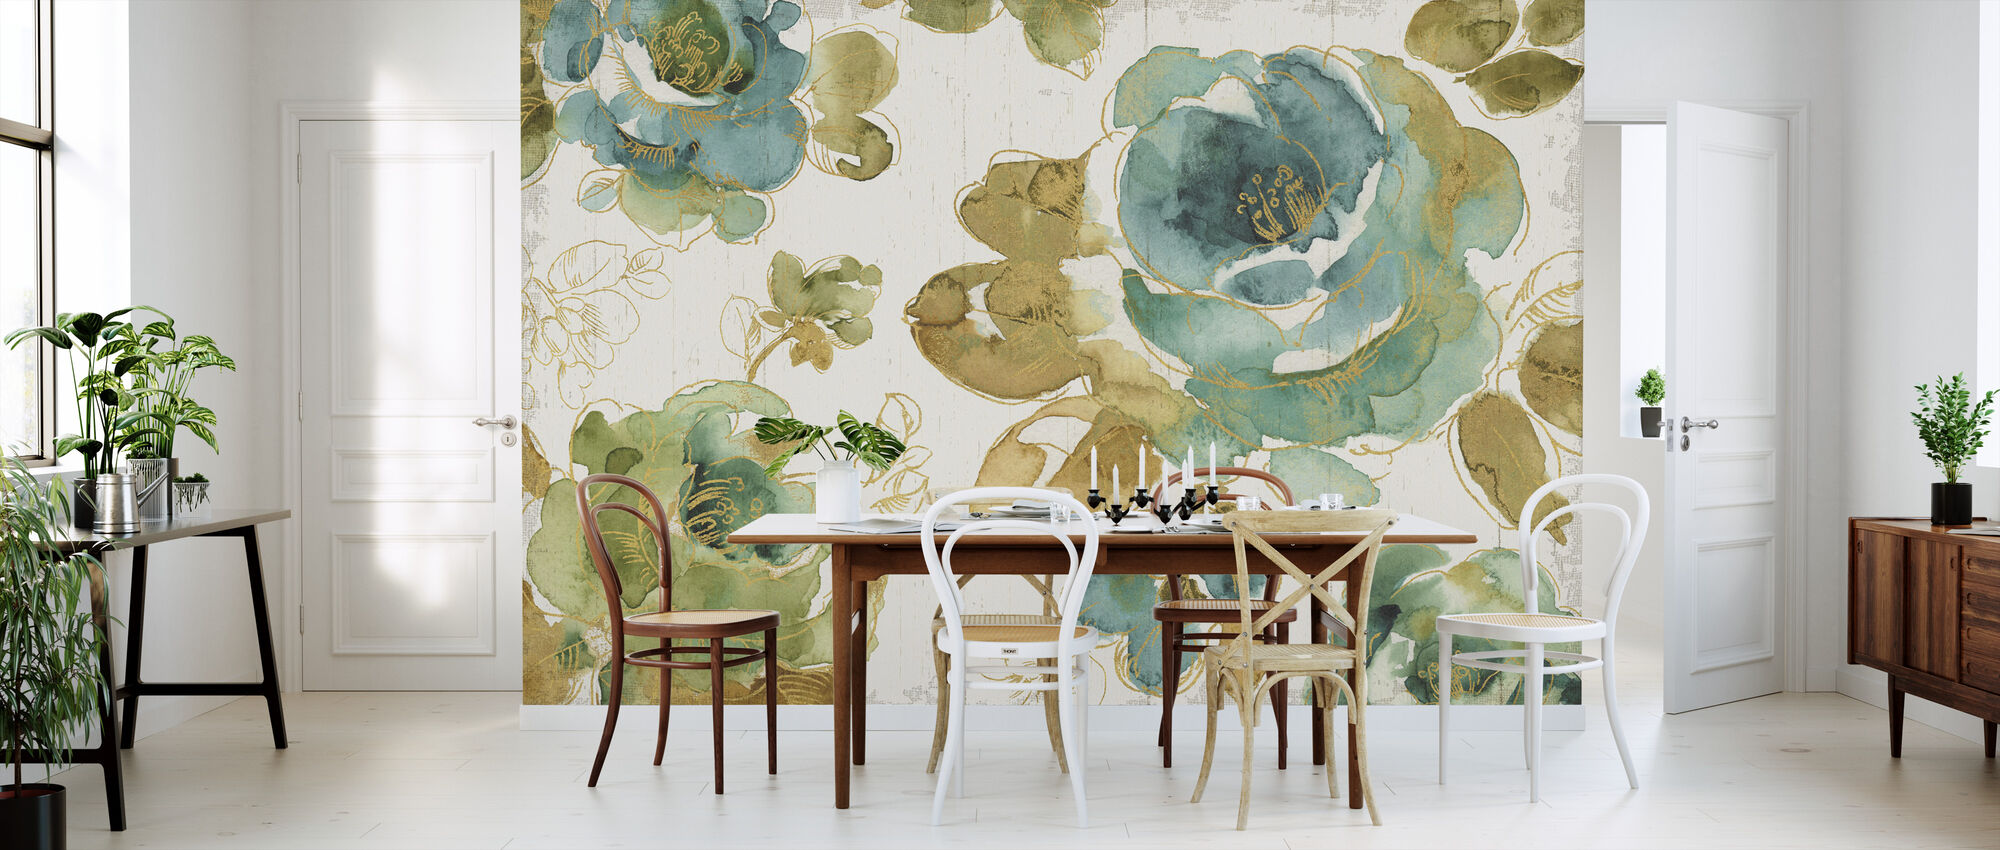 My Greenhouse Roses on Wood - Wallpaper - Kitchen